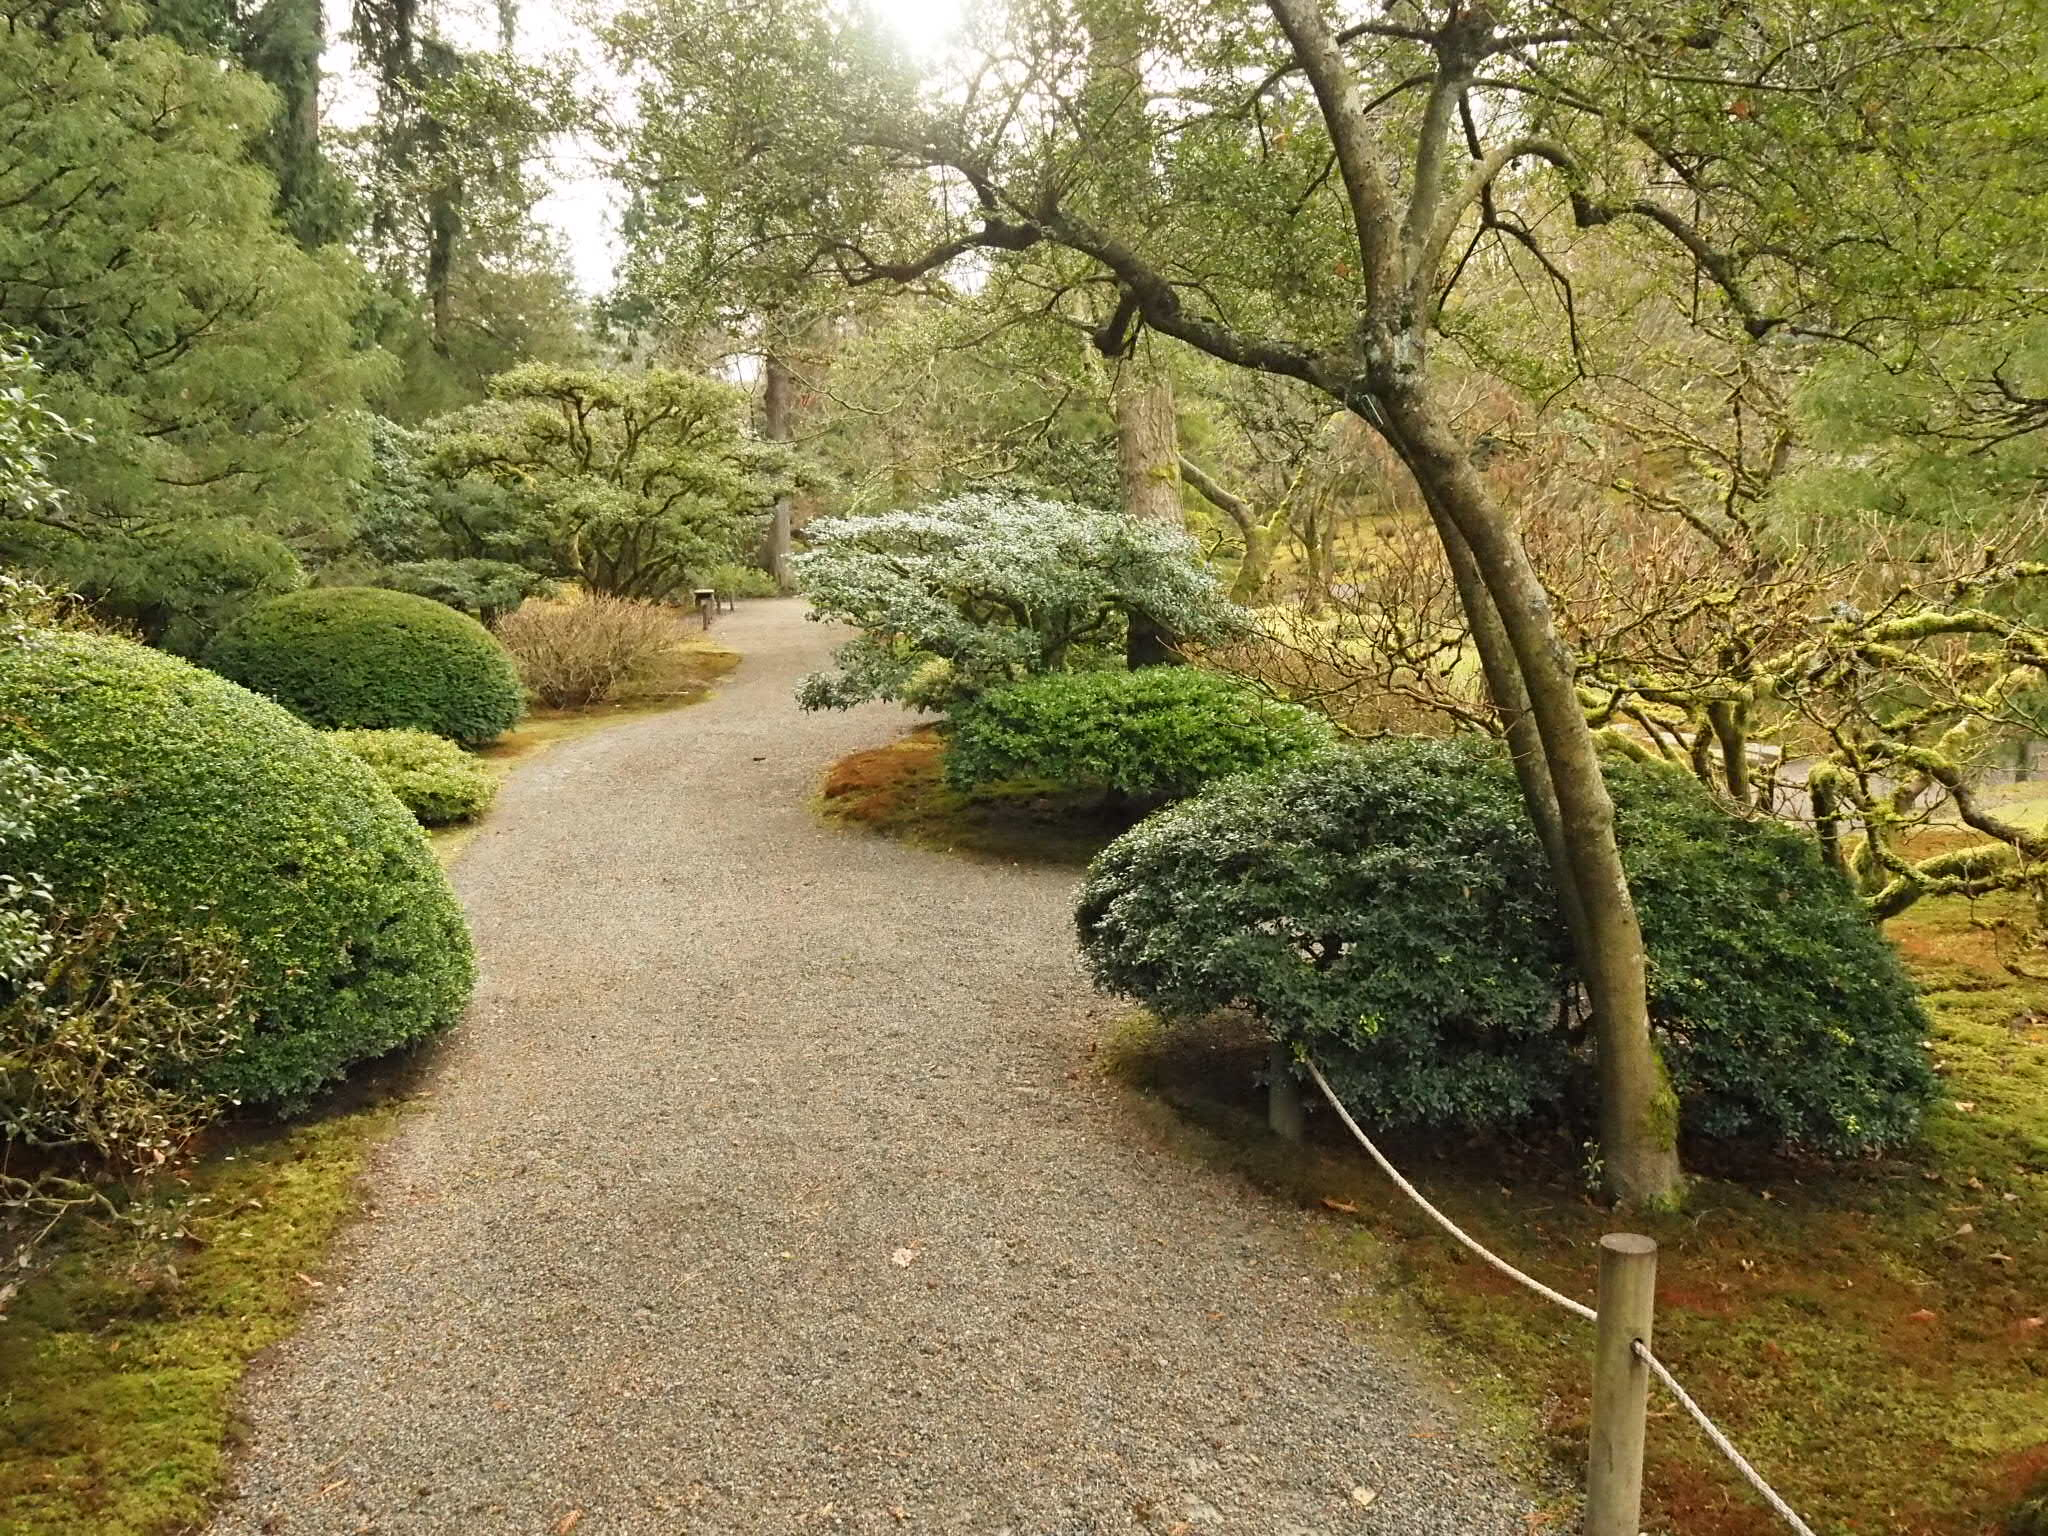 Japanese holly tamamono along the Eastern path of the garden